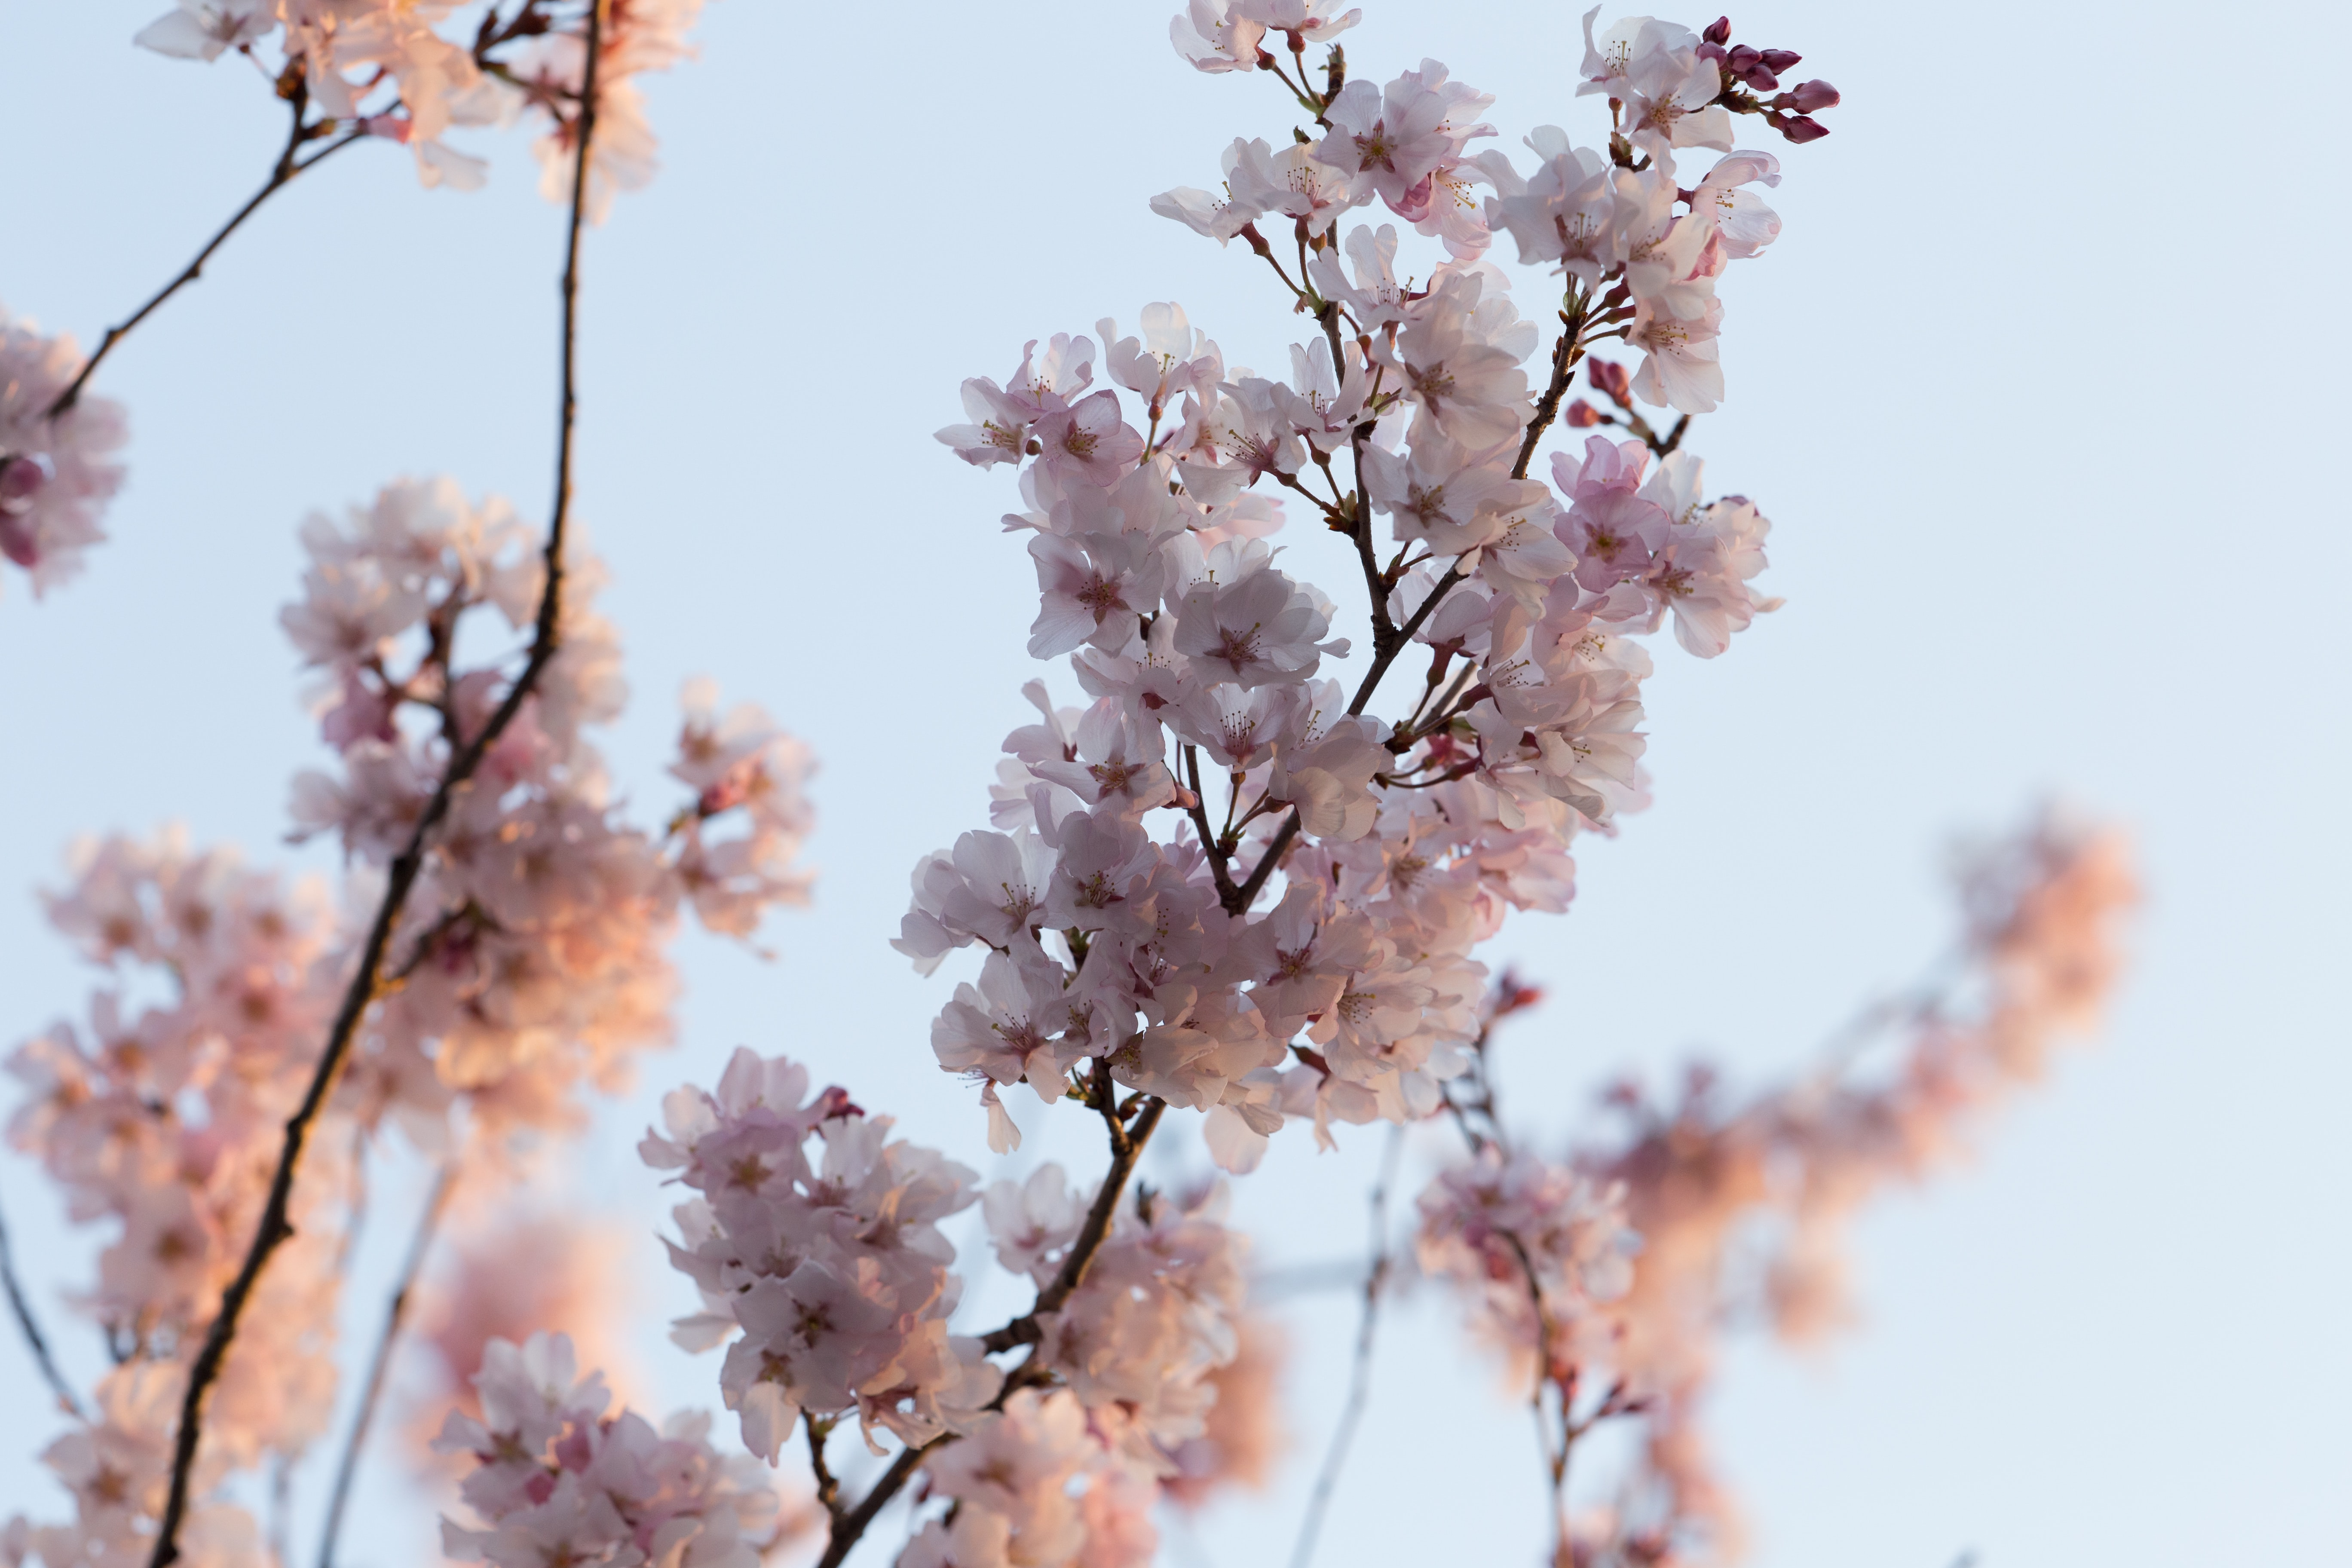 Close up of pink blossom and branch in against clear sky in Spring, Takasaki